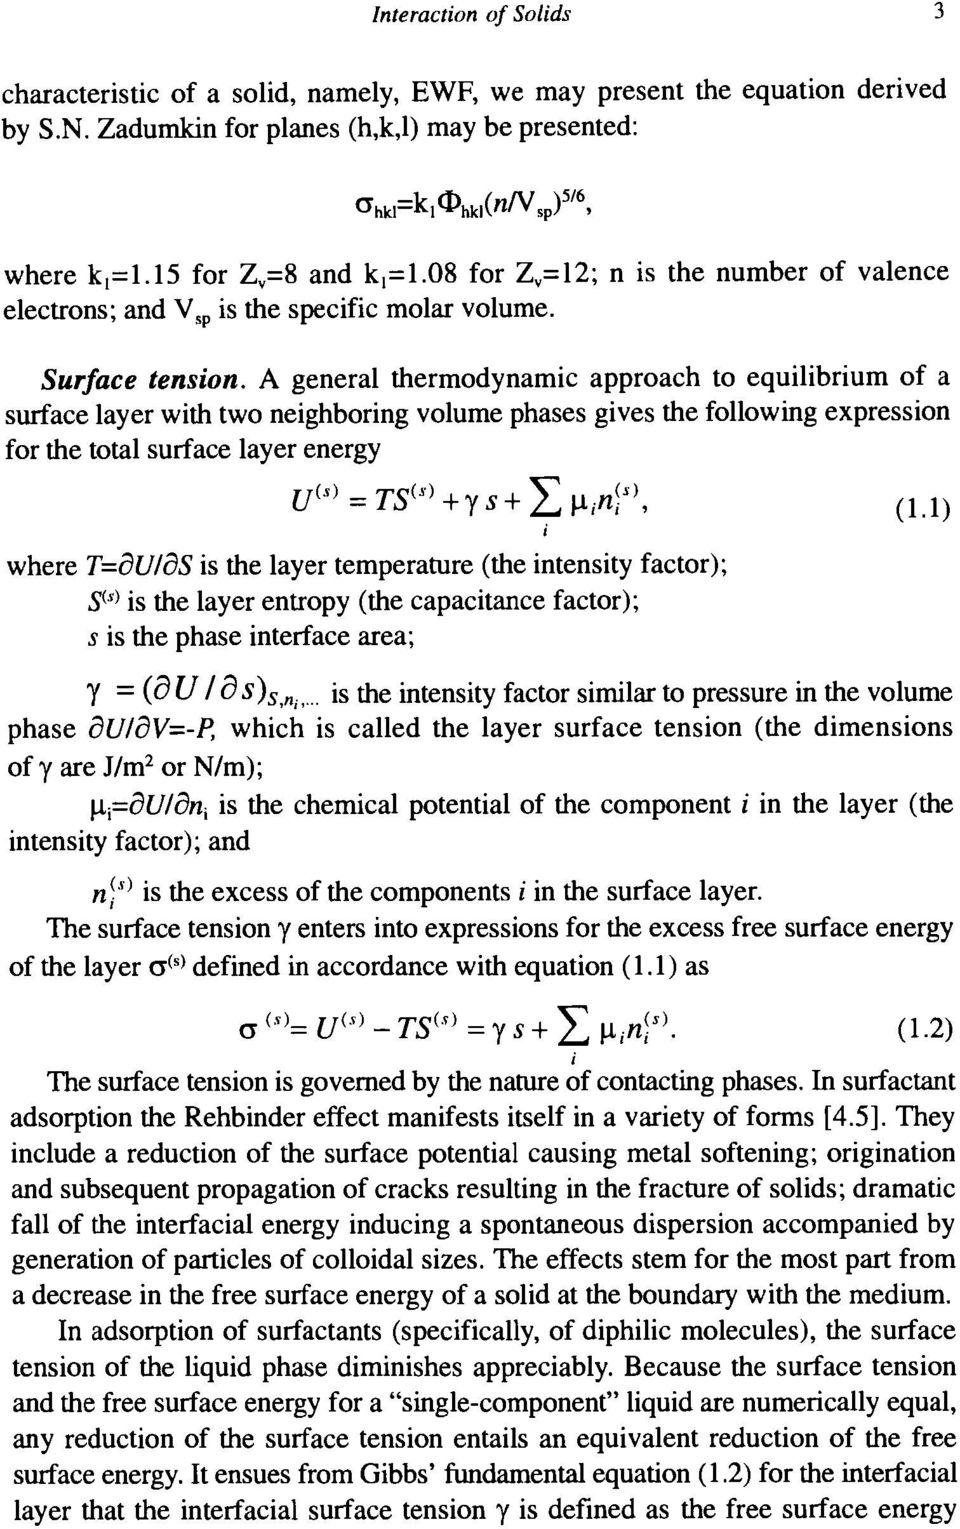 A general thermodynamic approach to equilibrium of a surface layer with two neighboring volume phases gives the following expression for the total surface layer energy where T=dU/dS is the layer